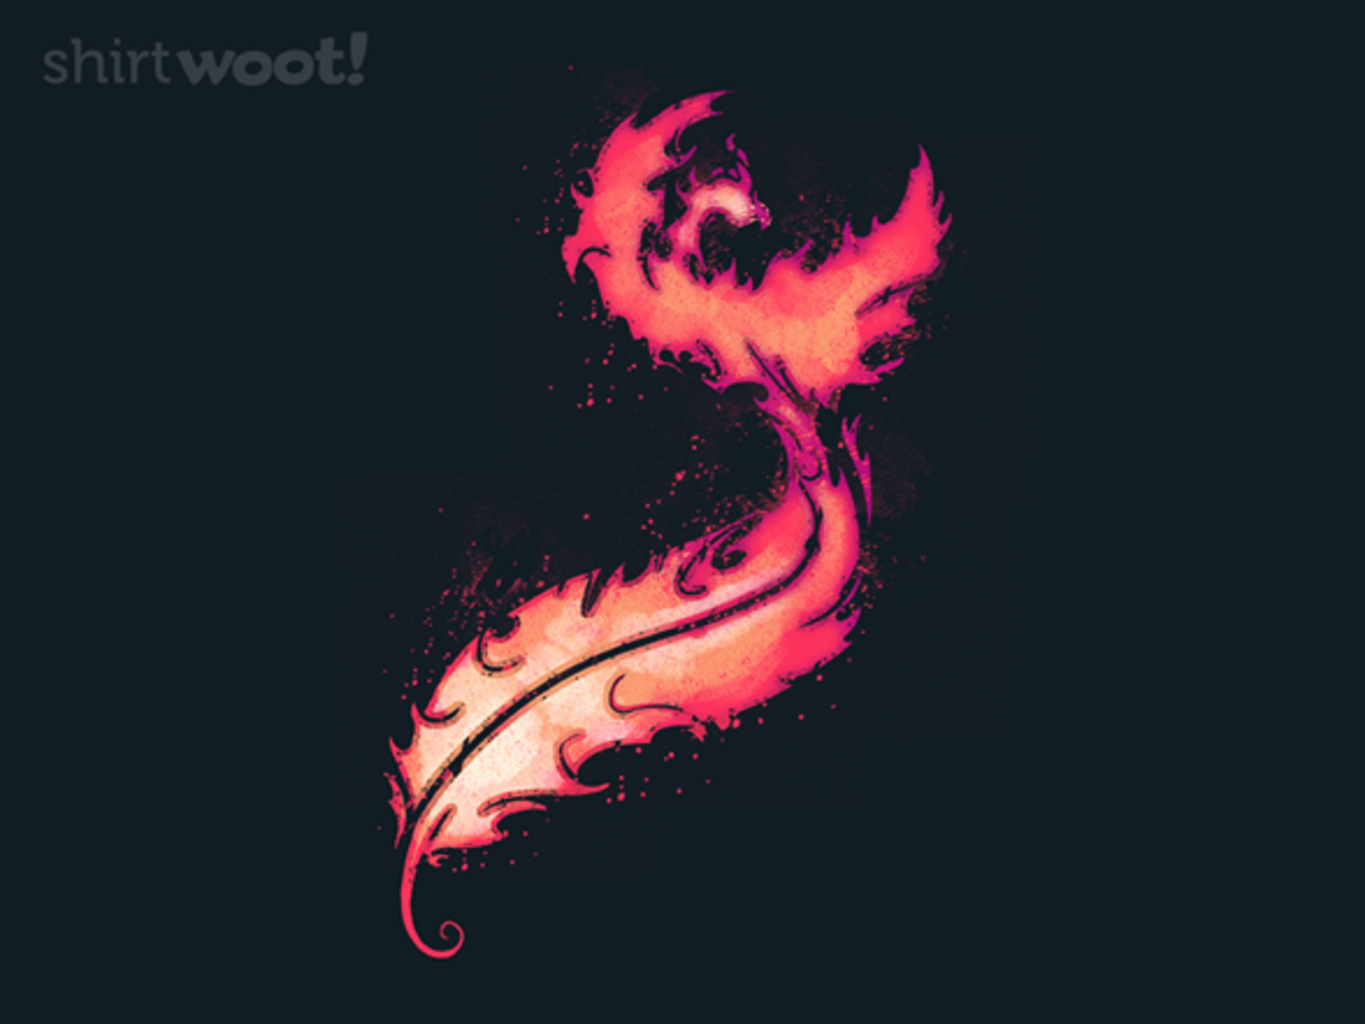 Woot!: Feather and Flame